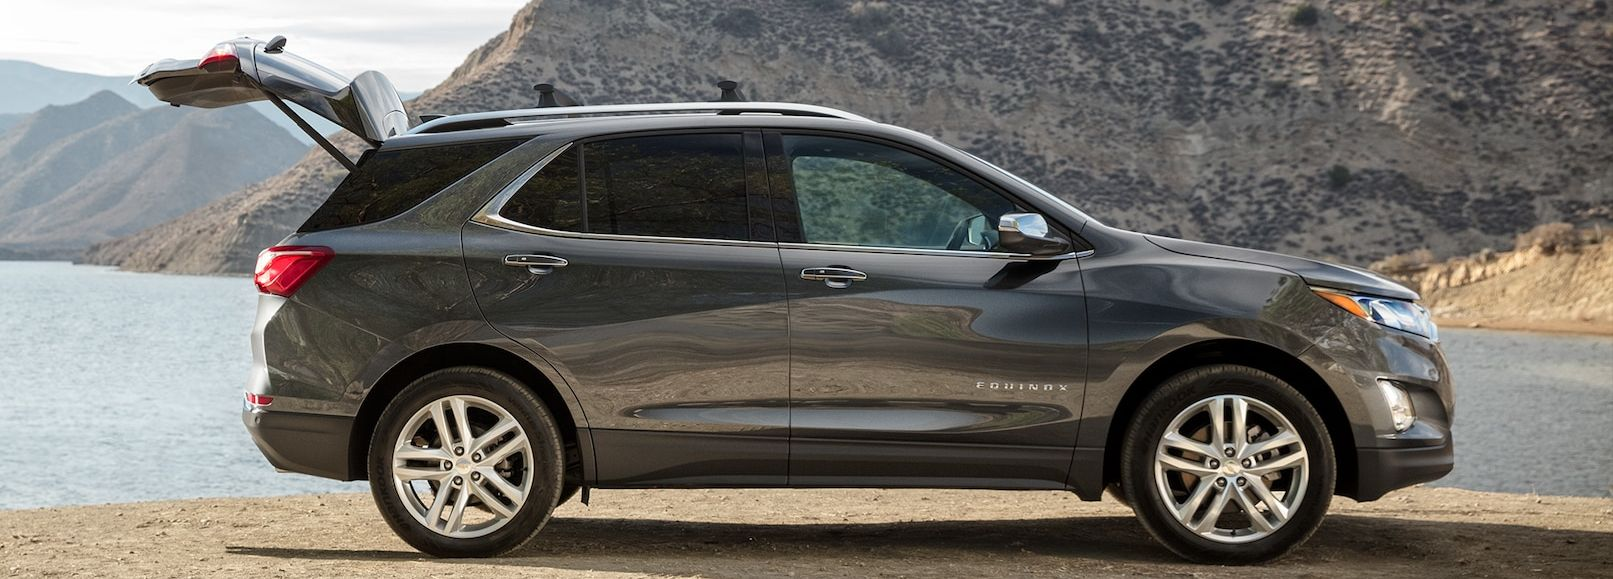 2019 Chevrolet Equinox for Sale near Fairmont, MN